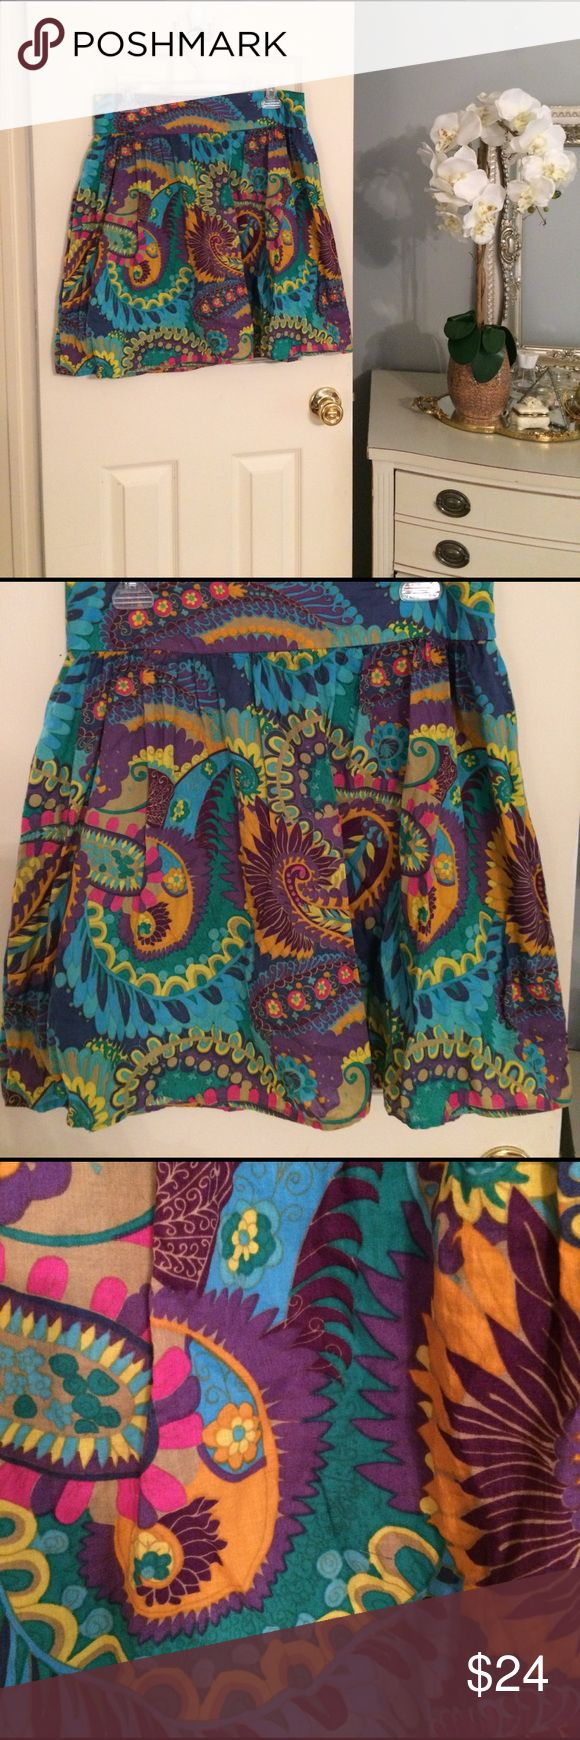 "Mimi Chica tropical paisley mini skirt Gorgeous 100% cotton (including the lining) Mimi Chica tropical paisley print mini skirt. Rear zip closure with a thick waistband. A beautiful addition to your spring and summer wardrobe. Purchased at Nordstrom. EUC. Waist = 32"" / Length = 20"" Mimi Chica Skirts Mini"